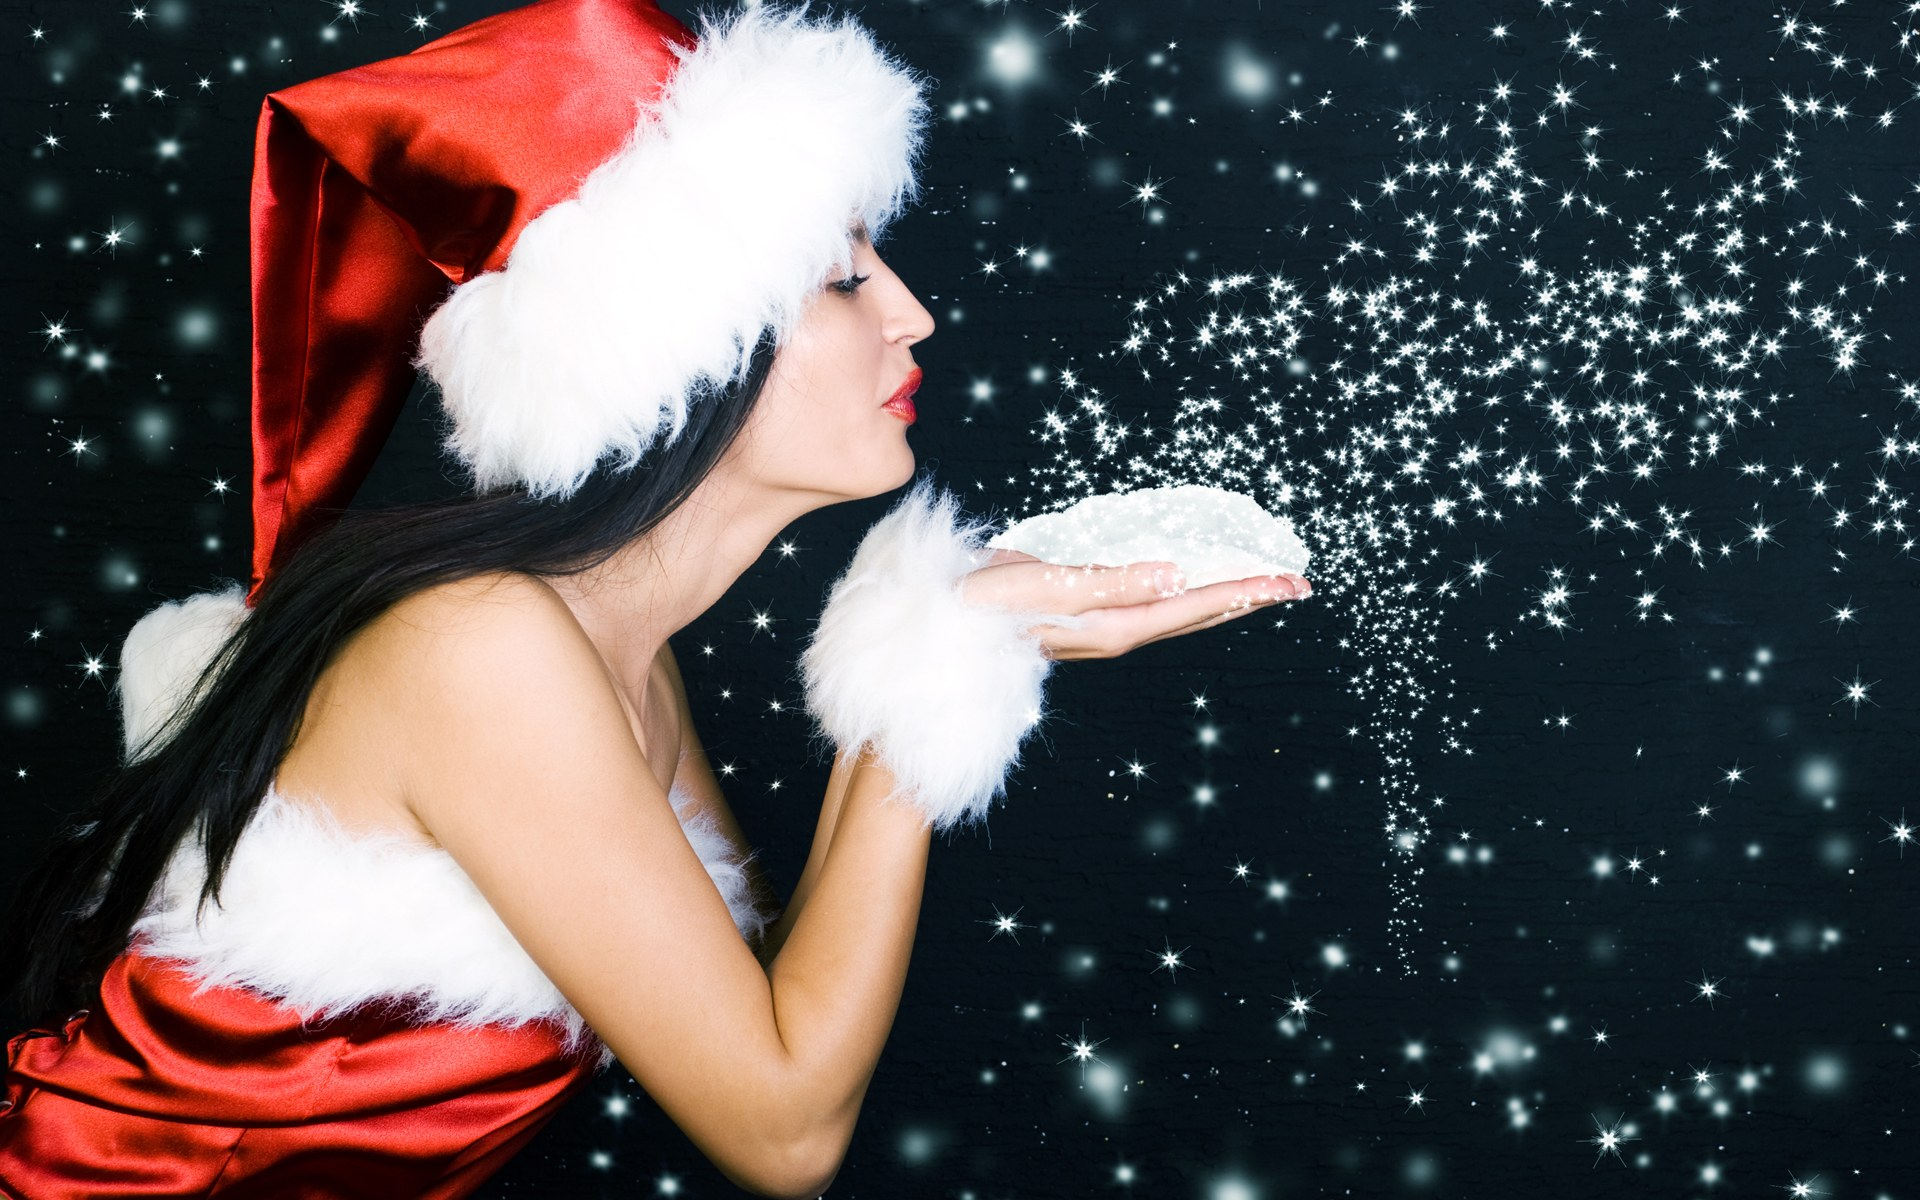 Cute Merry Christmas Wallpapers To Download For Free 0